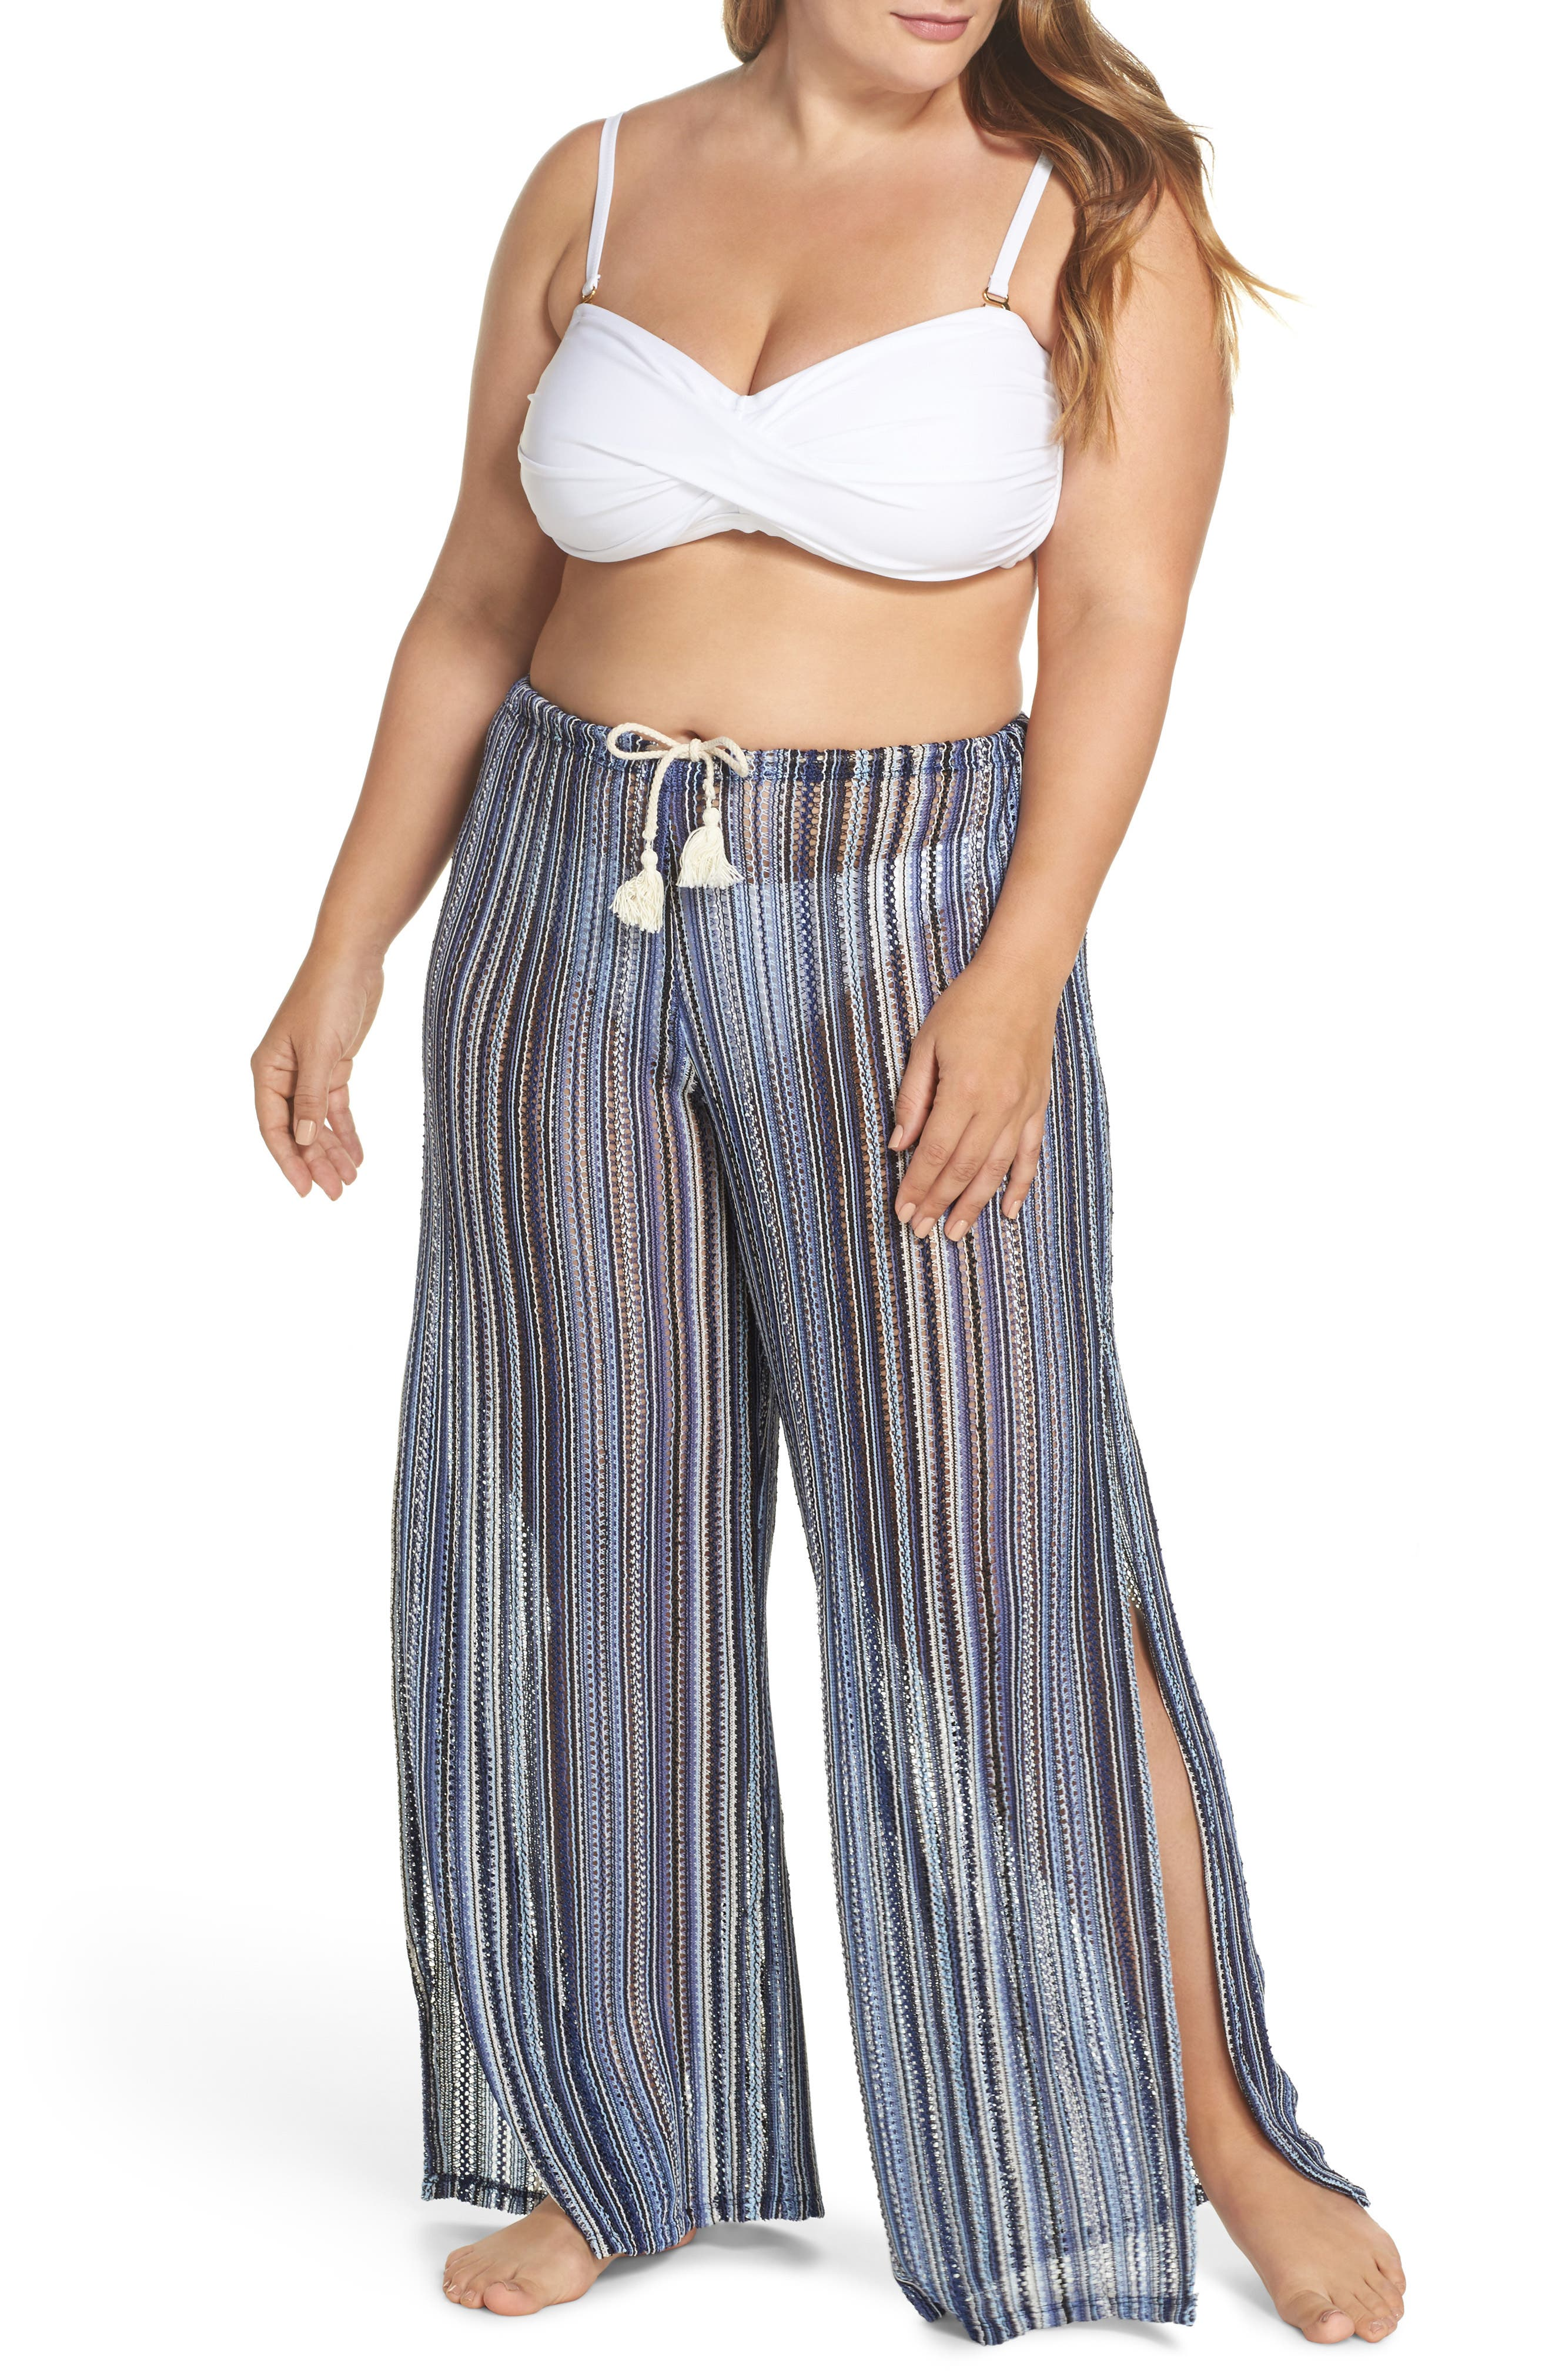 Pierside Cover-Up Flyaway Pants,                         Main,                         color, Black Multi